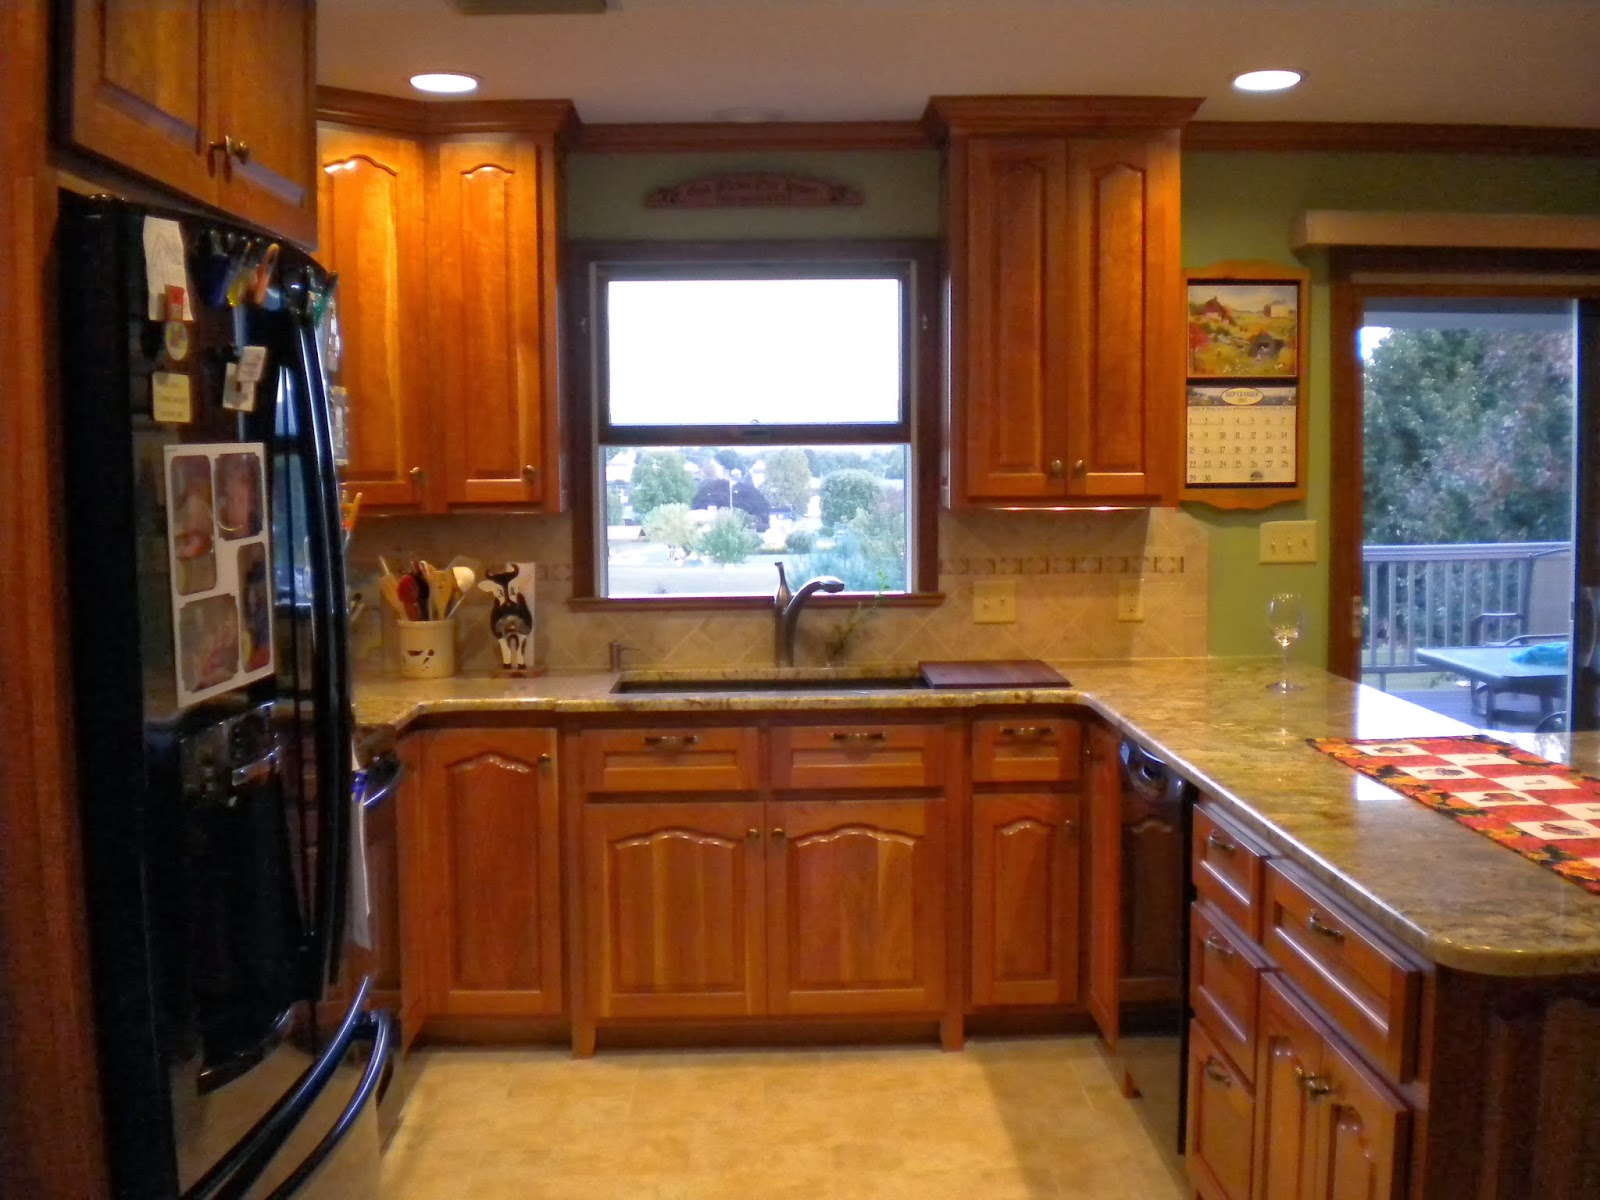 Tile Flooring to Match Cherry Cabinets